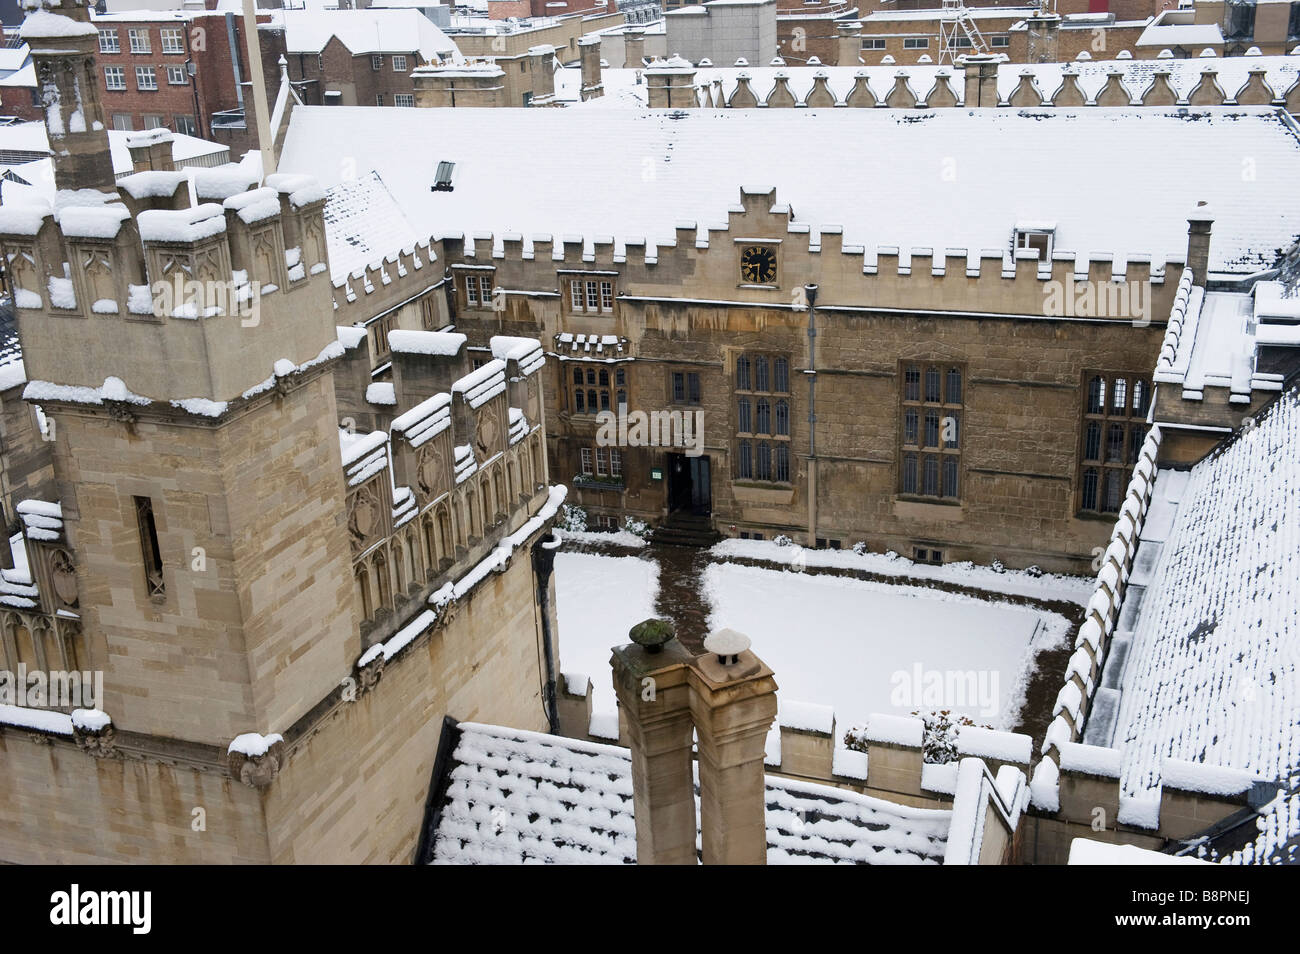 Looking down into Jesus College at Oxford University in the snow - Stock Image